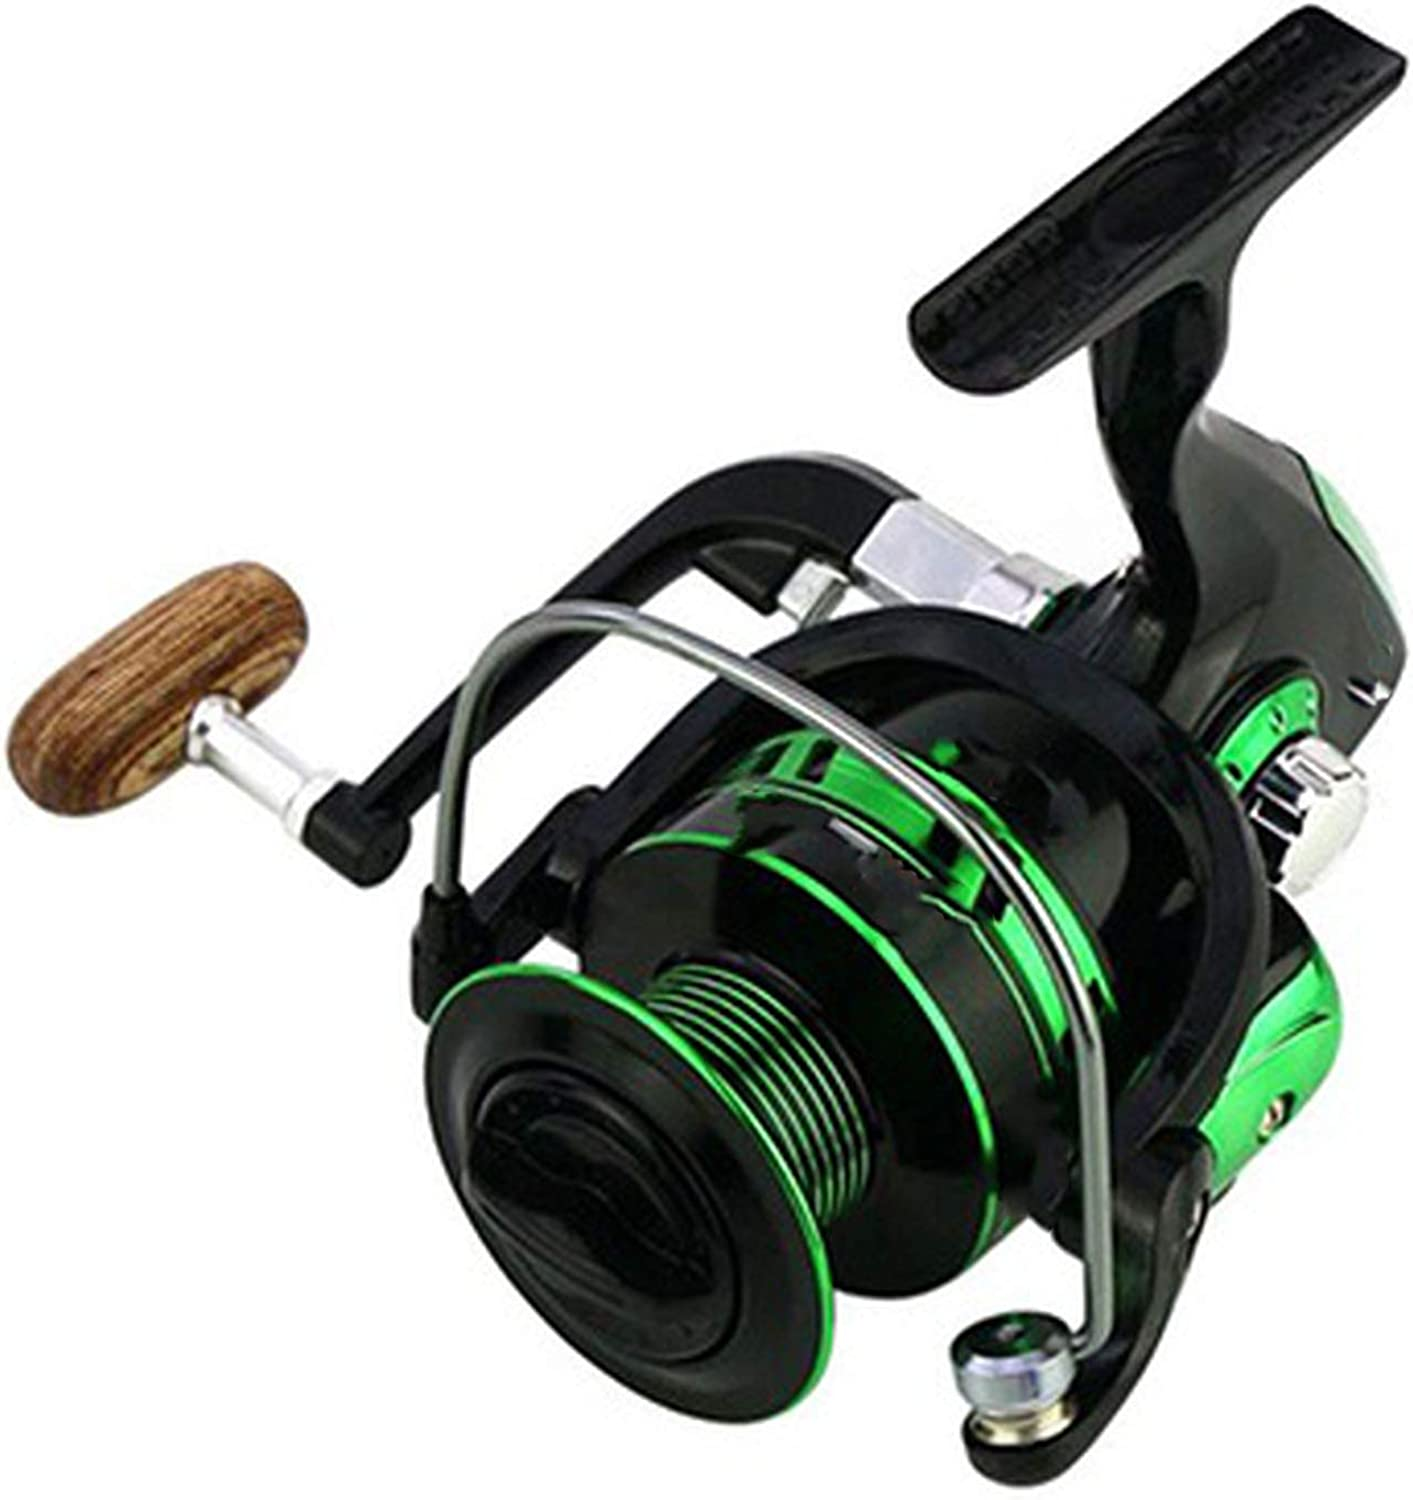 Newest 12Bb Ball Bearings Spinning Fishing Reel Gl 5.5 1 Right Left Metal Spool Fishing Tackle